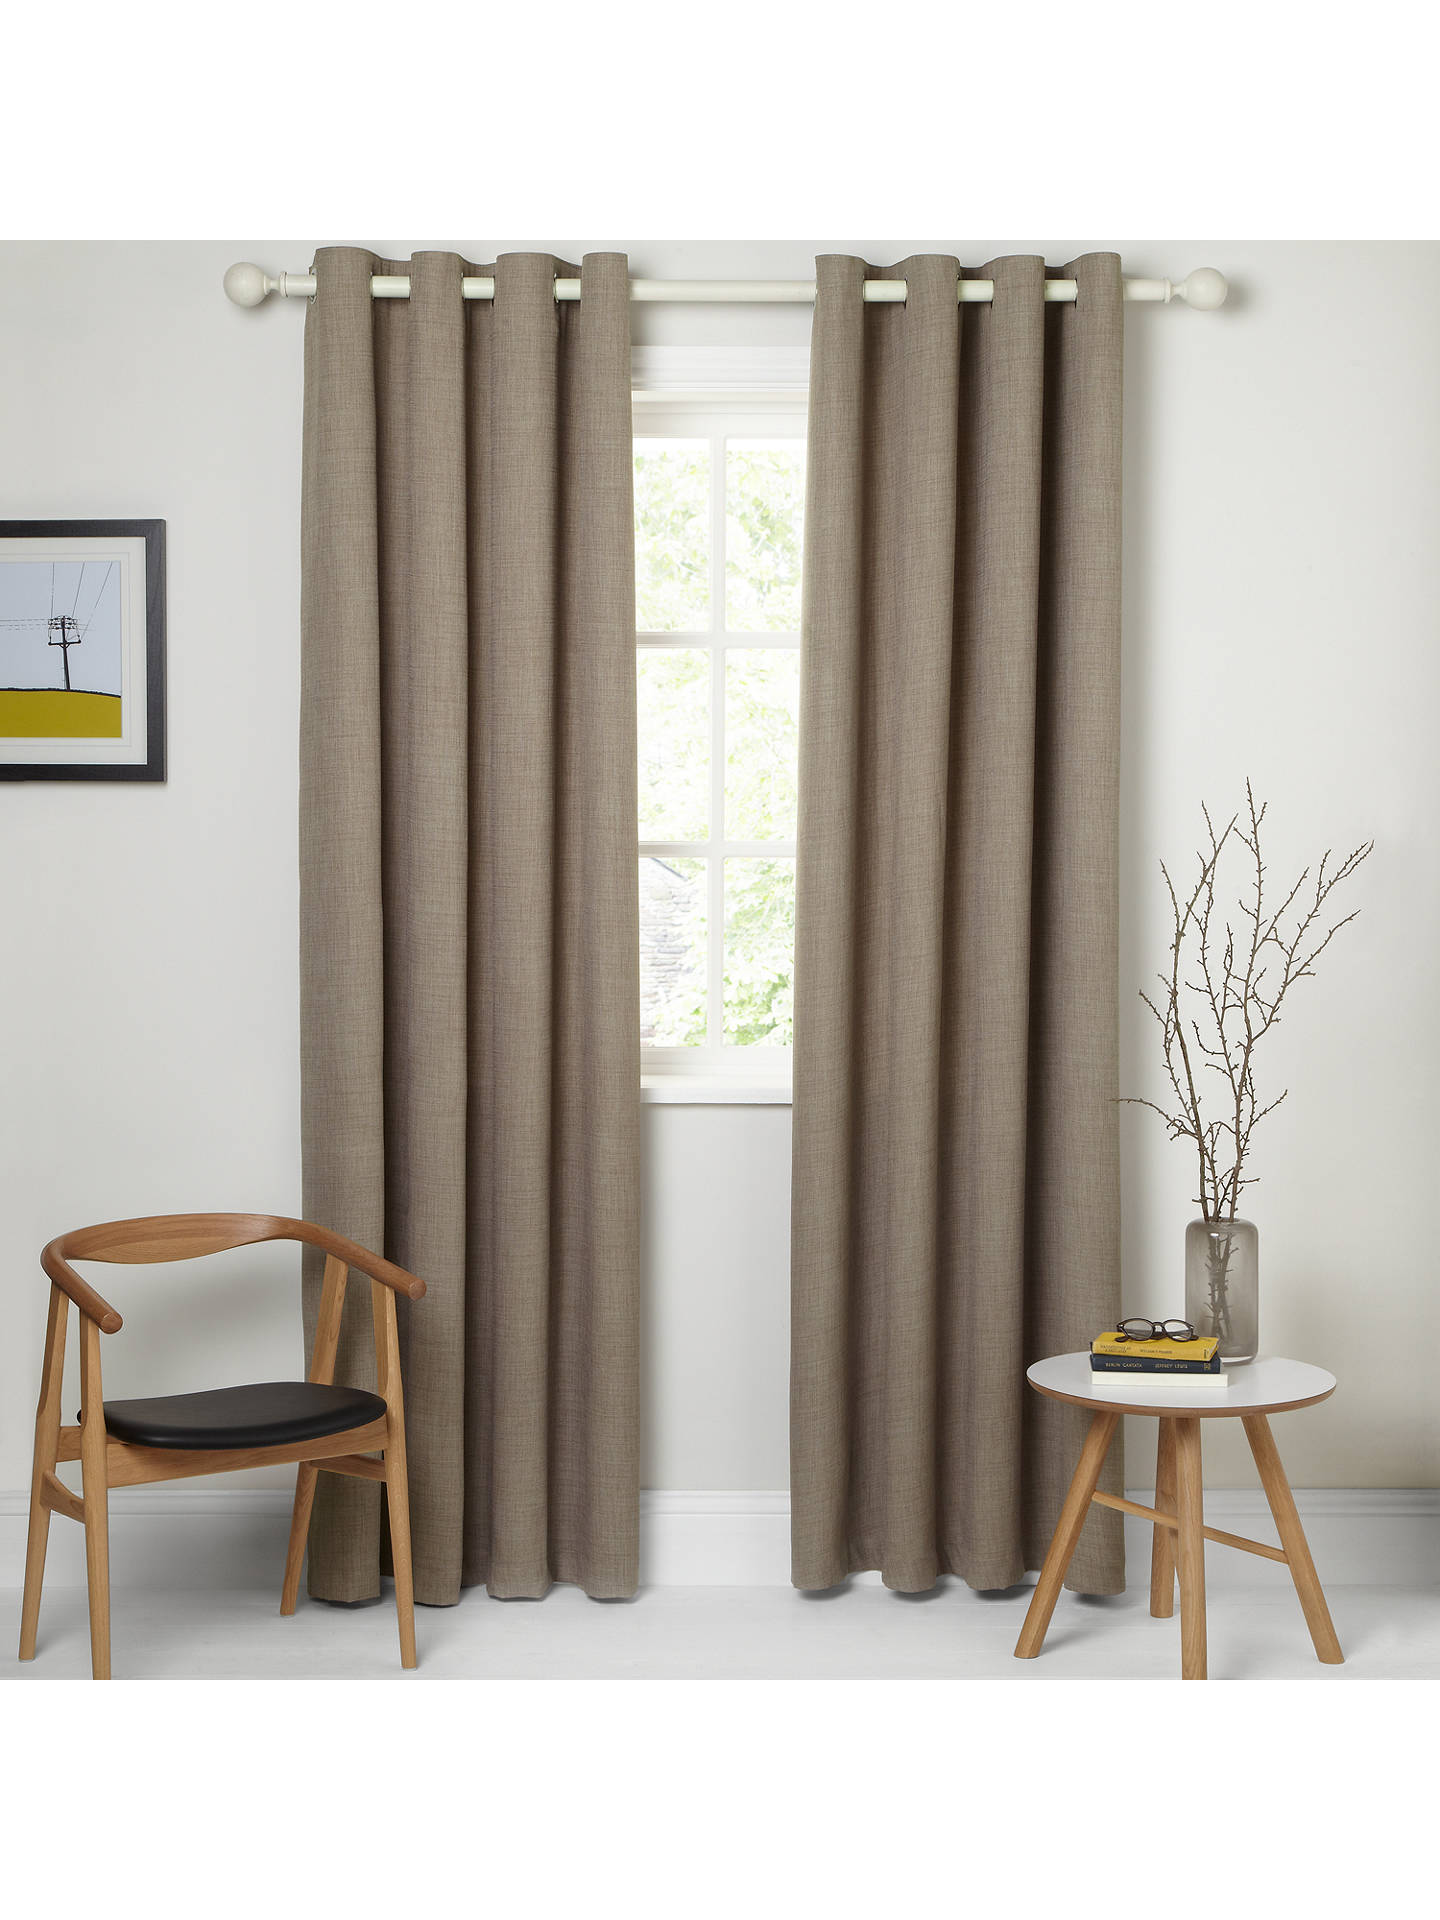 BuyJohn Lewis & Partners Barathea Pair Lined Eyelet Curtains, Mocha, W135 x Drop 137cm Online at johnlewis.com